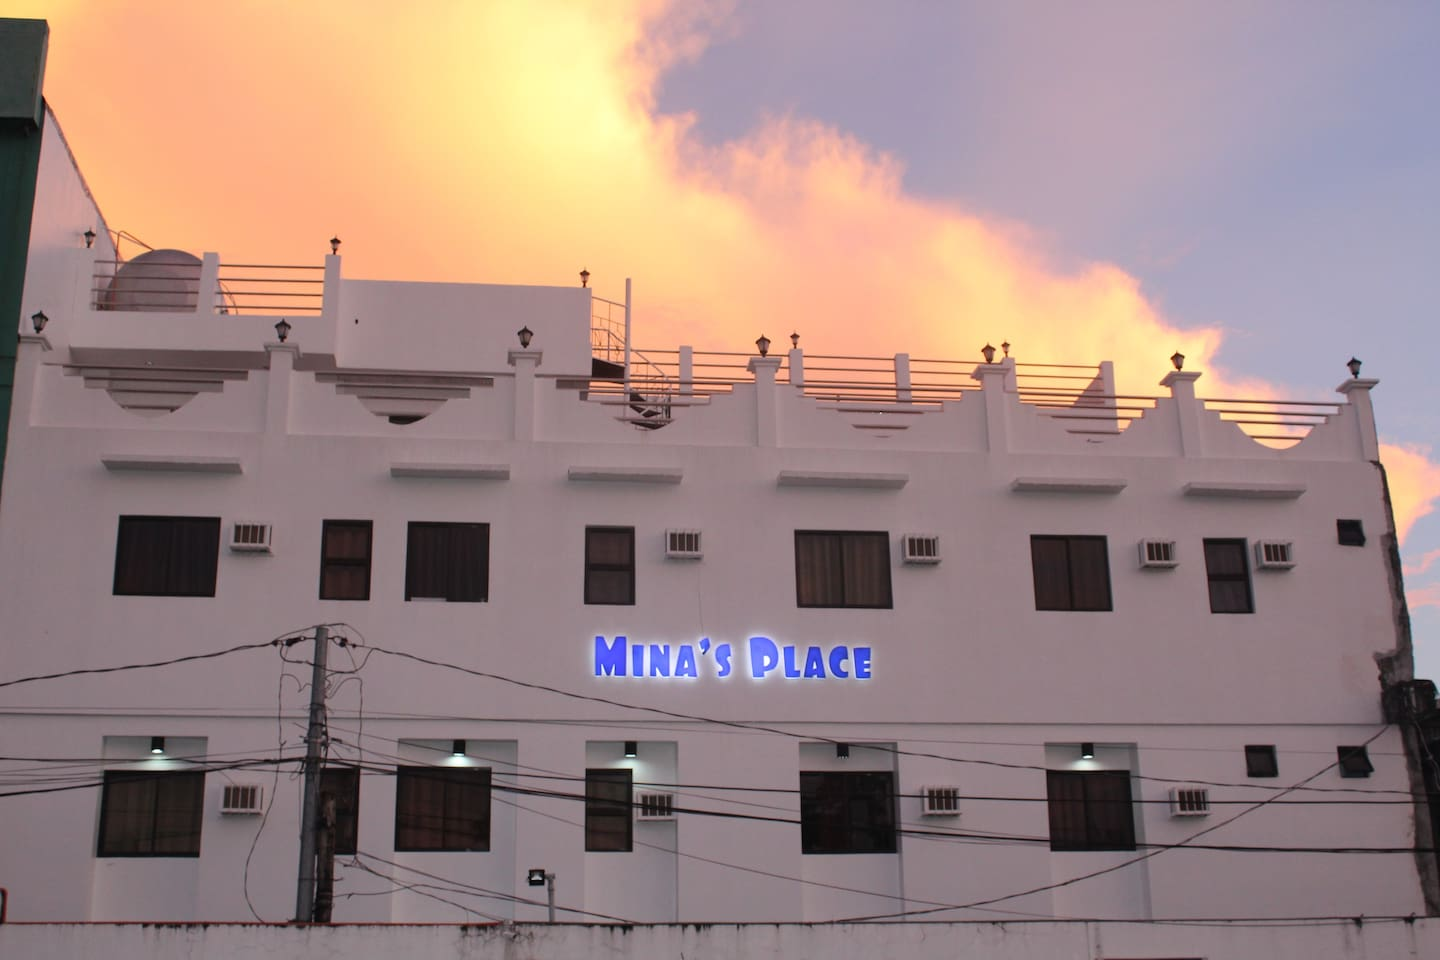 Stay in a place Called Home, Serene and Cozy  Find a place to stay at the heart of  the city amidst  the white and earthly   hues of this peaceful hideaway.  Modern classic style  in this airy and roomy  sanctuary, reflecting the elegance of the surrounding historic place of Tacloban